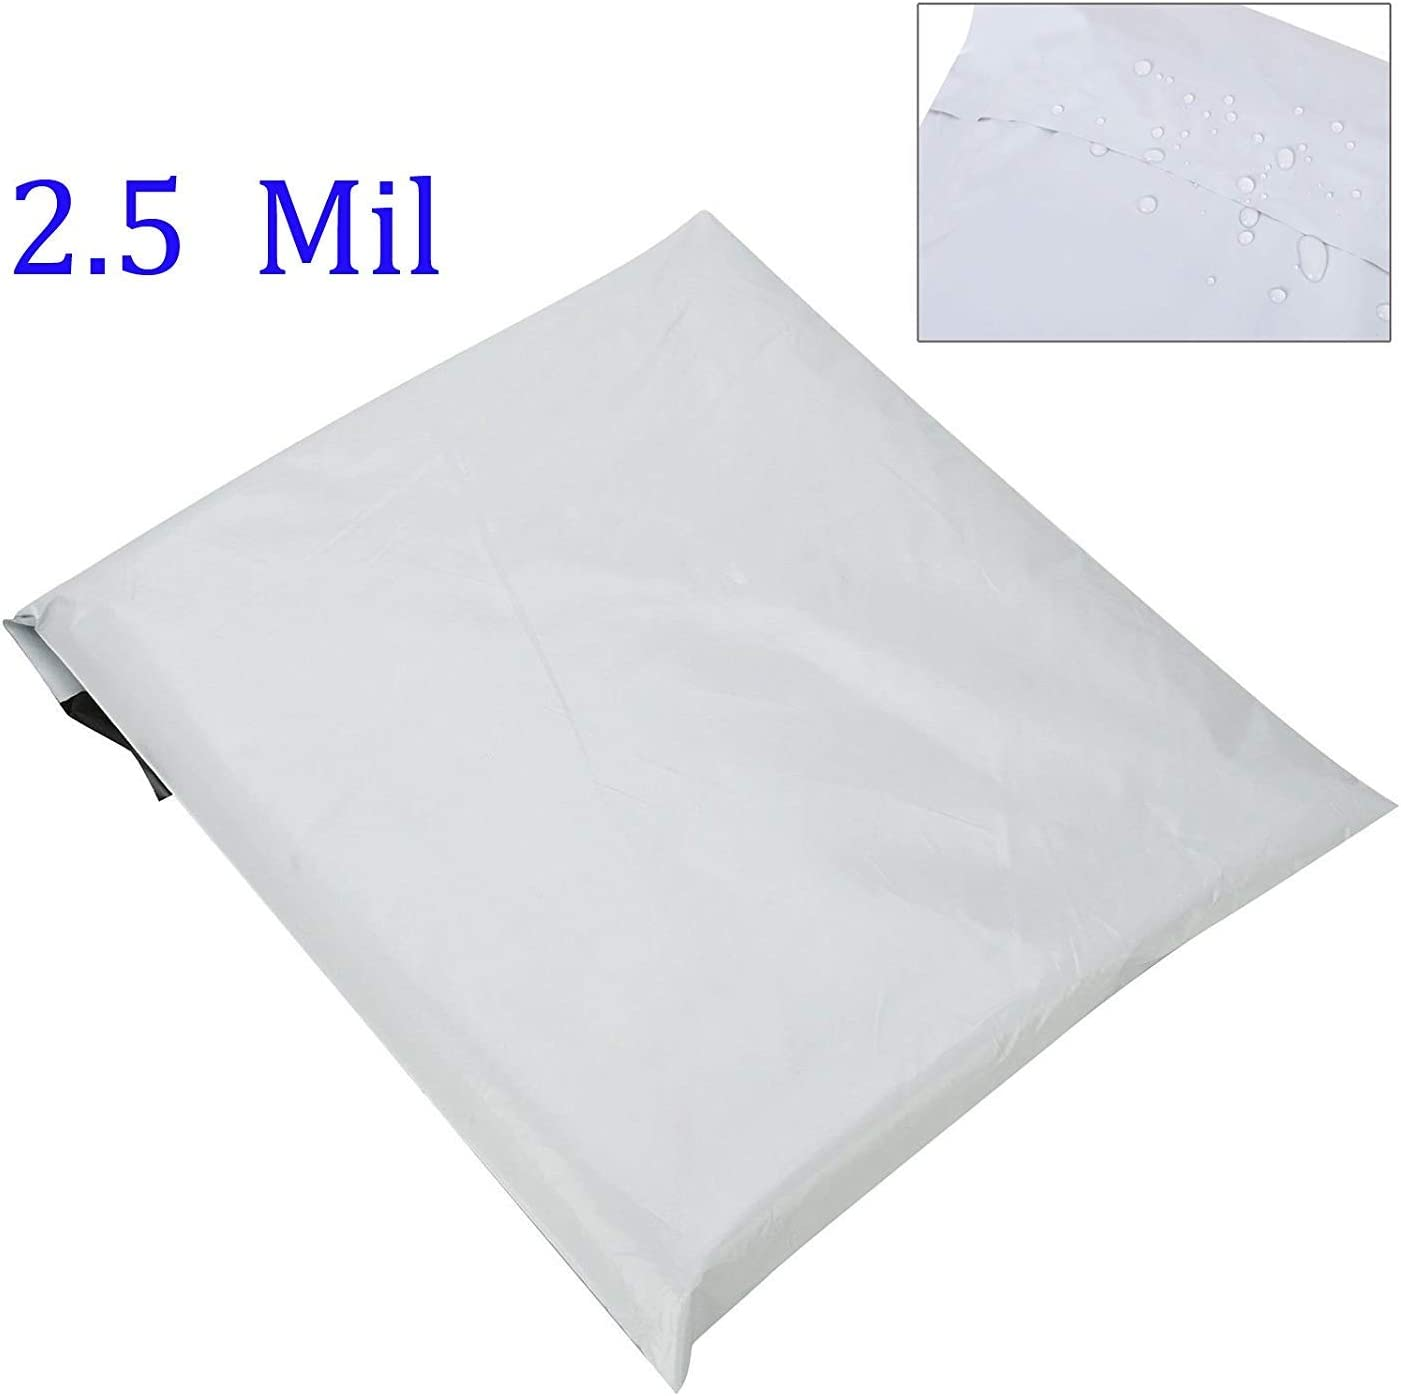 Premium Envelope Mailers Self Adhesive 12x15.5 Inch Poly Mailers Plastic Envelope Shipping Bags Waterproof and Tear-Proof Postal Bags 200